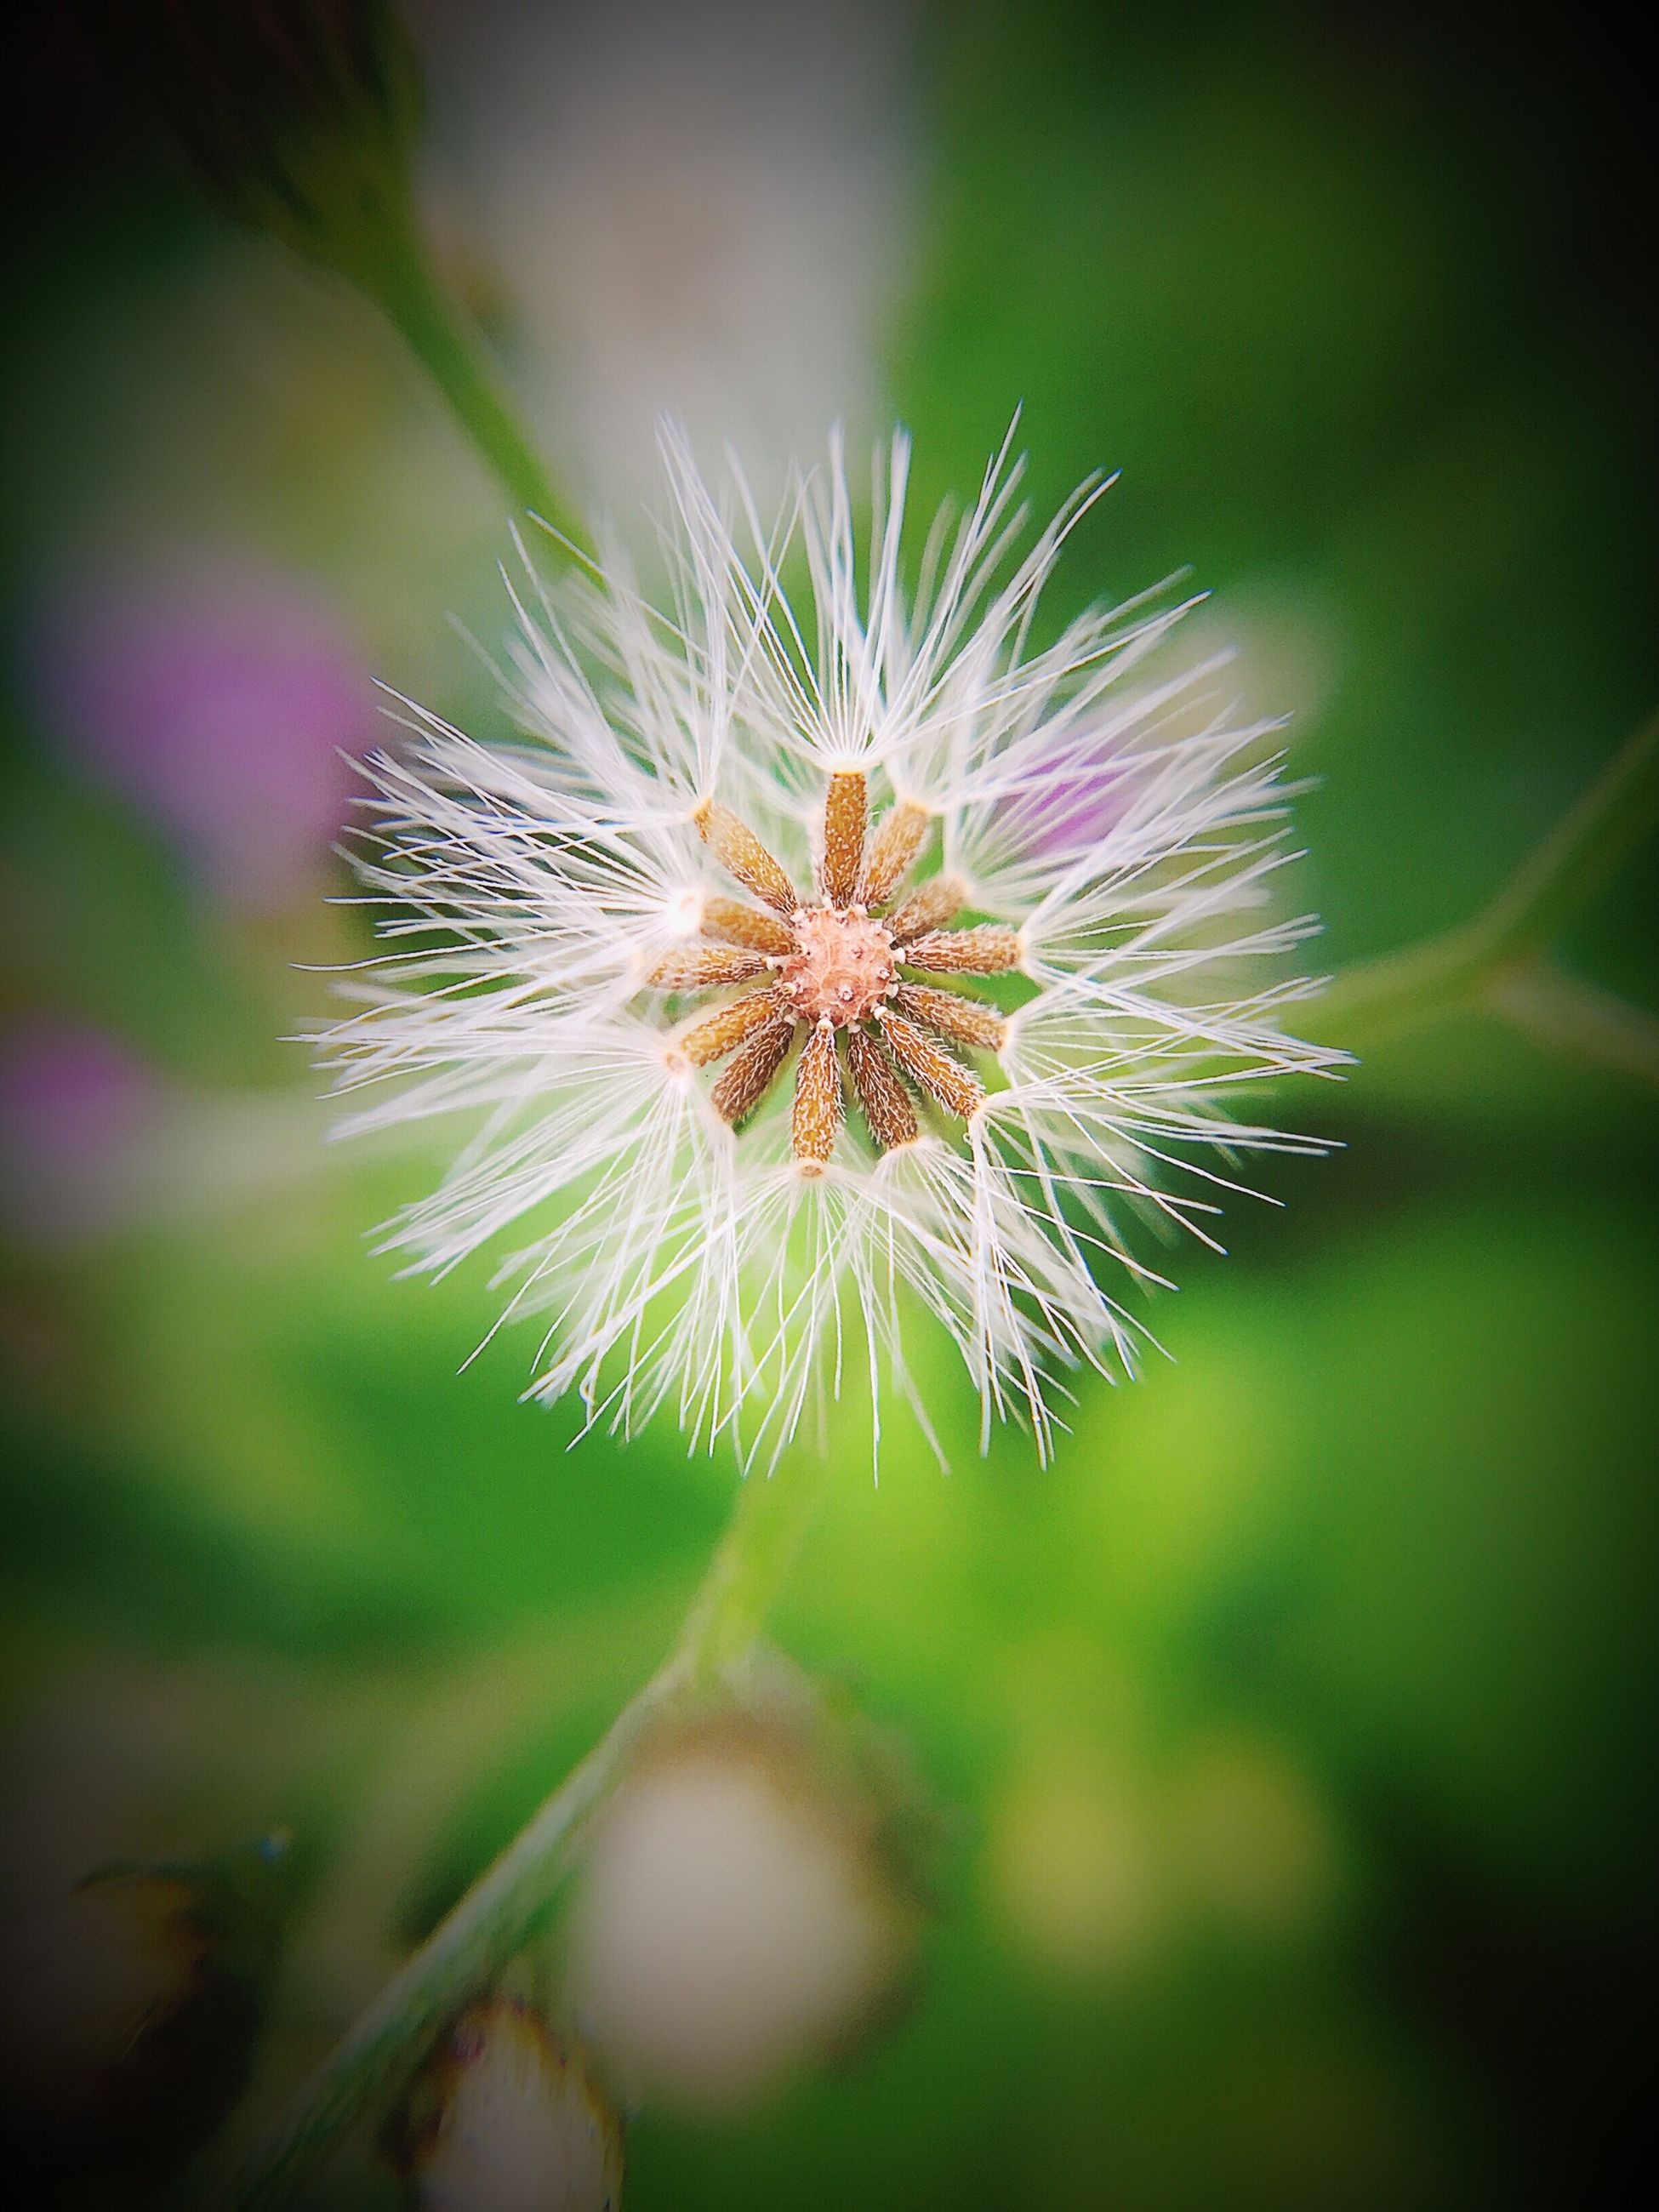 flower, fragility, freshness, growth, flower head, single flower, close-up, dandelion, focus on foreground, beauty in nature, nature, plant, petal, selective focus, blooming, in bloom, wildflower, stem, softness, outdoors